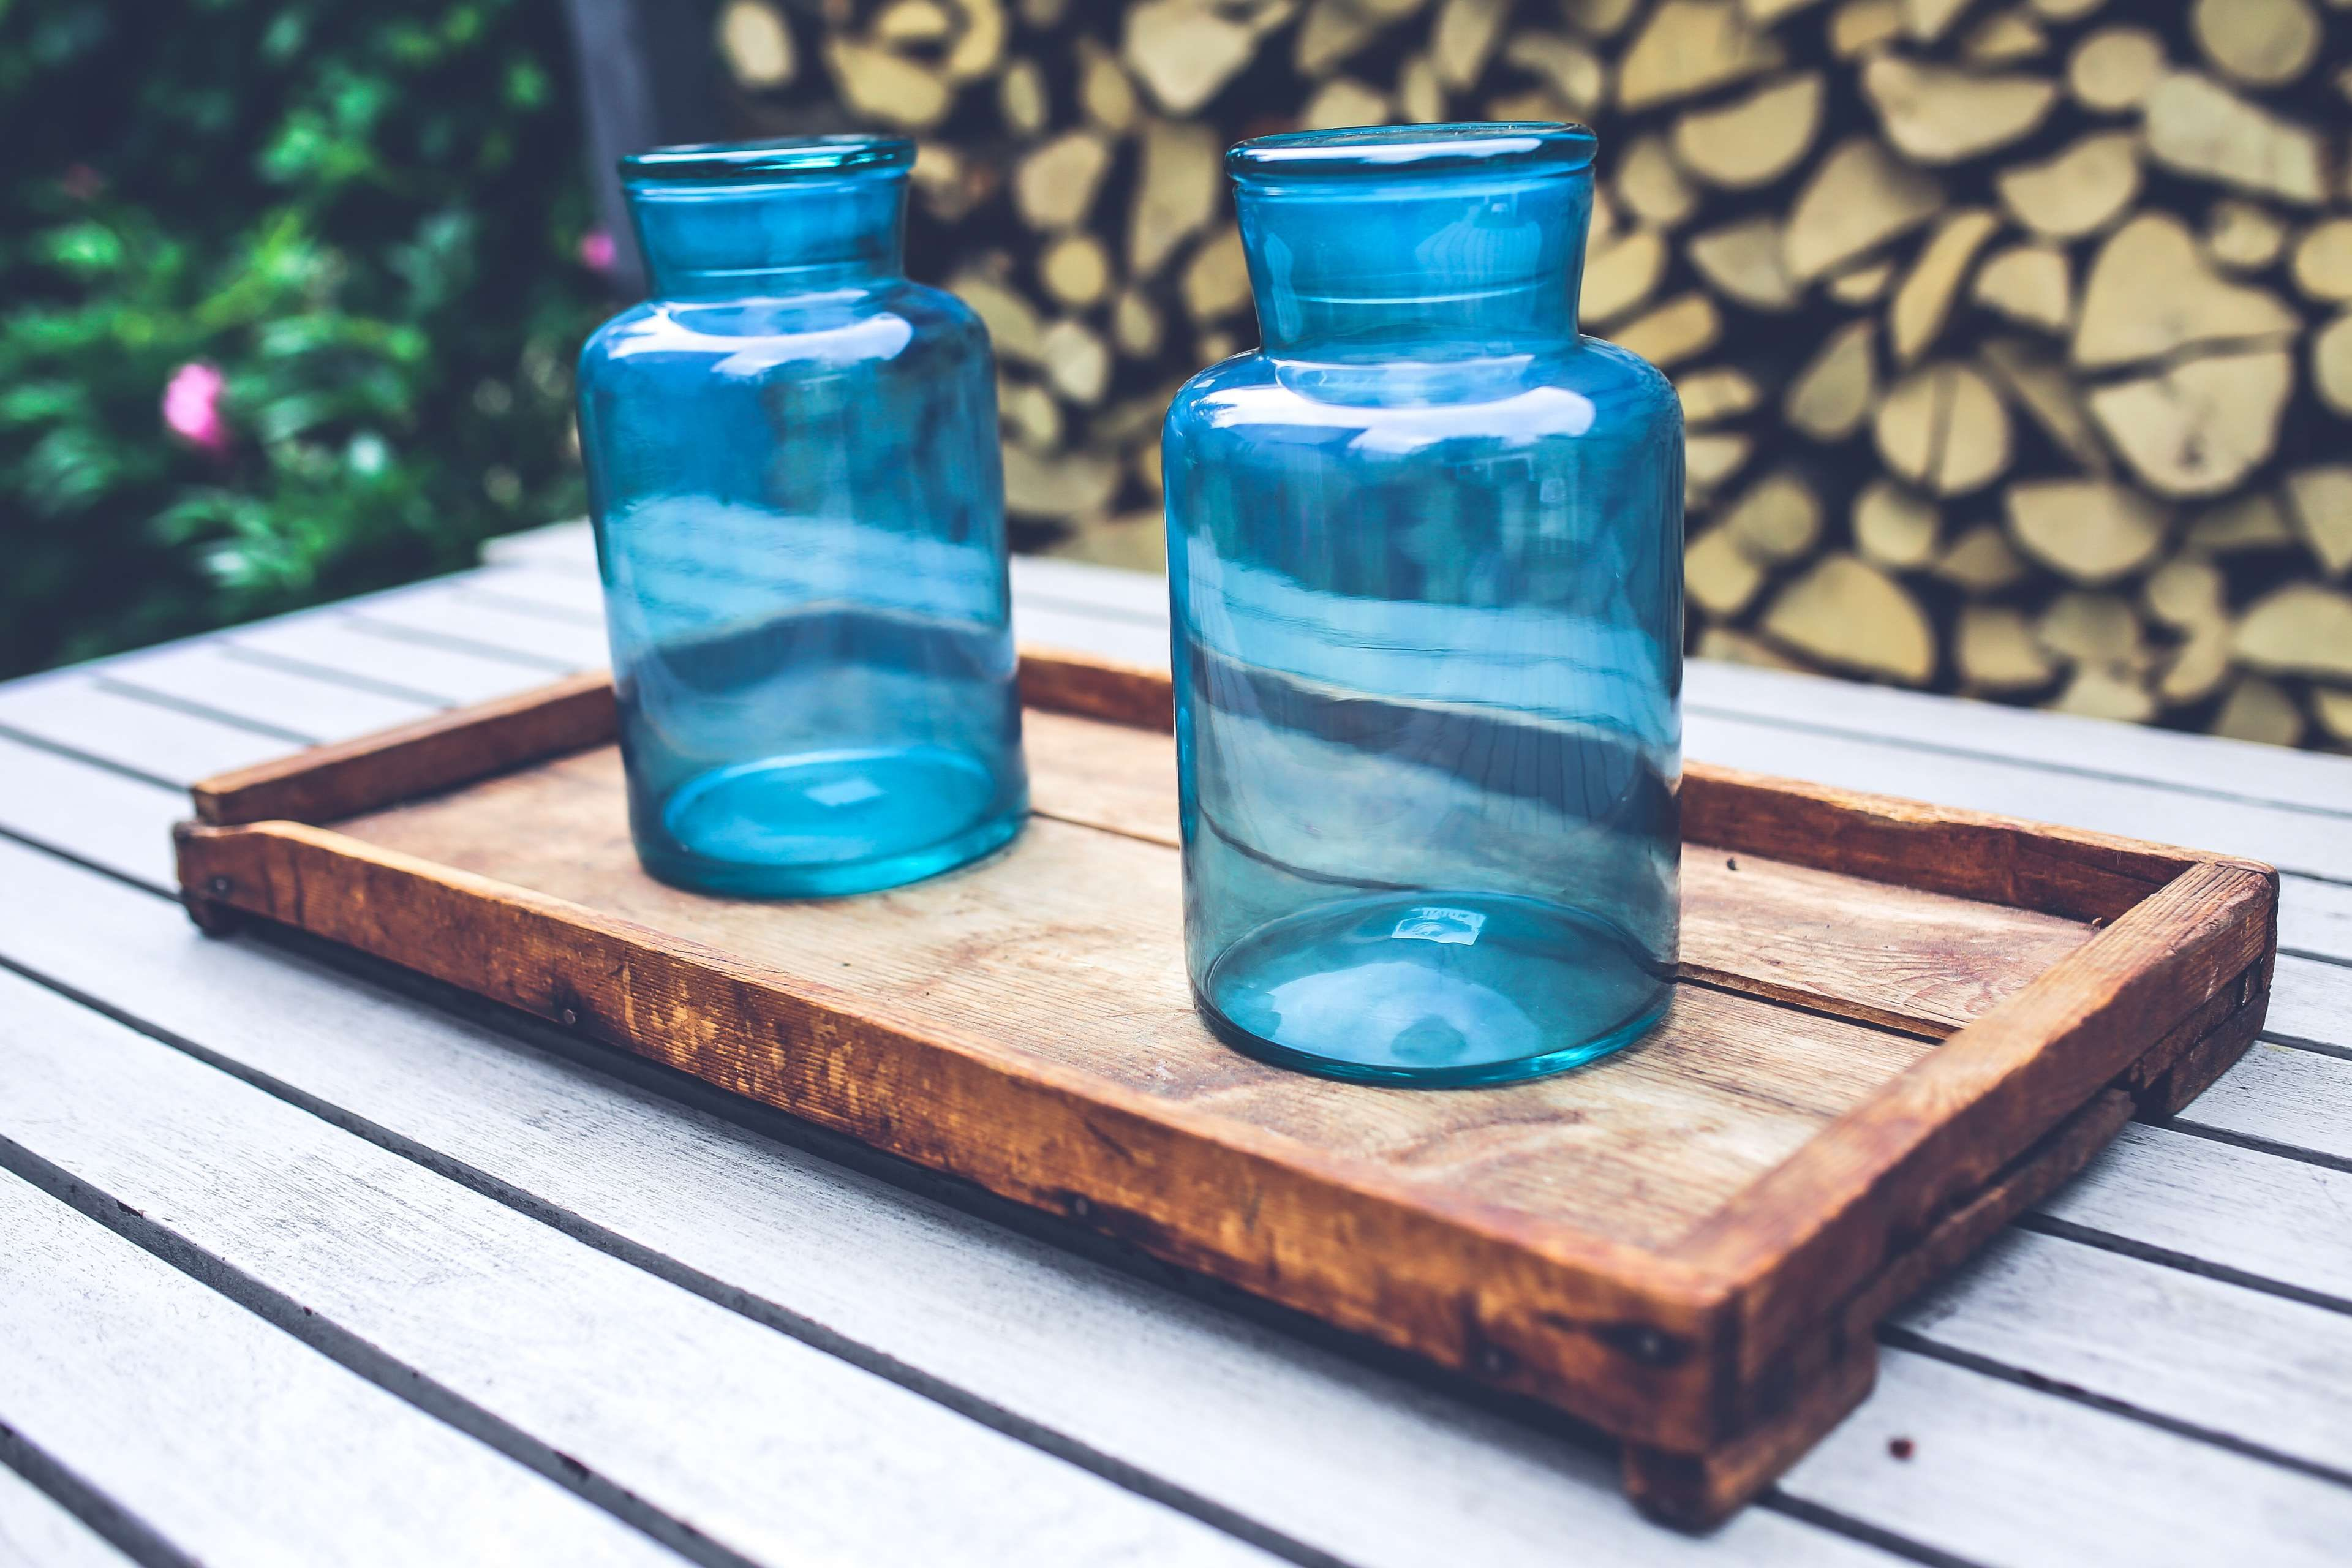 aromatherapy #bath #big #blue #bottle #care #color #container ...